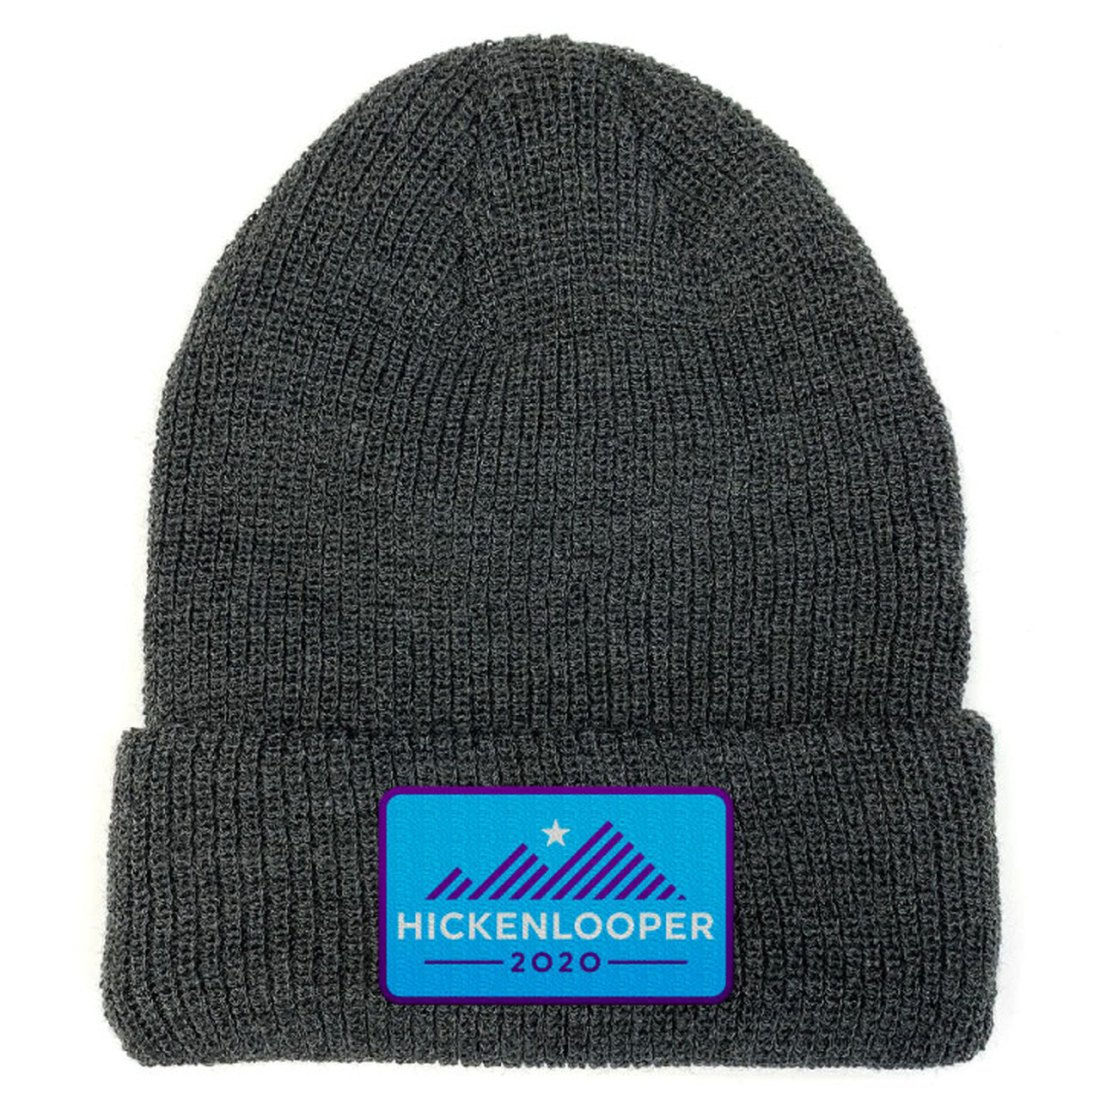 Hickenlooper 2020 Official Logo -- Charcoal Beanie (hickenlooper.com)